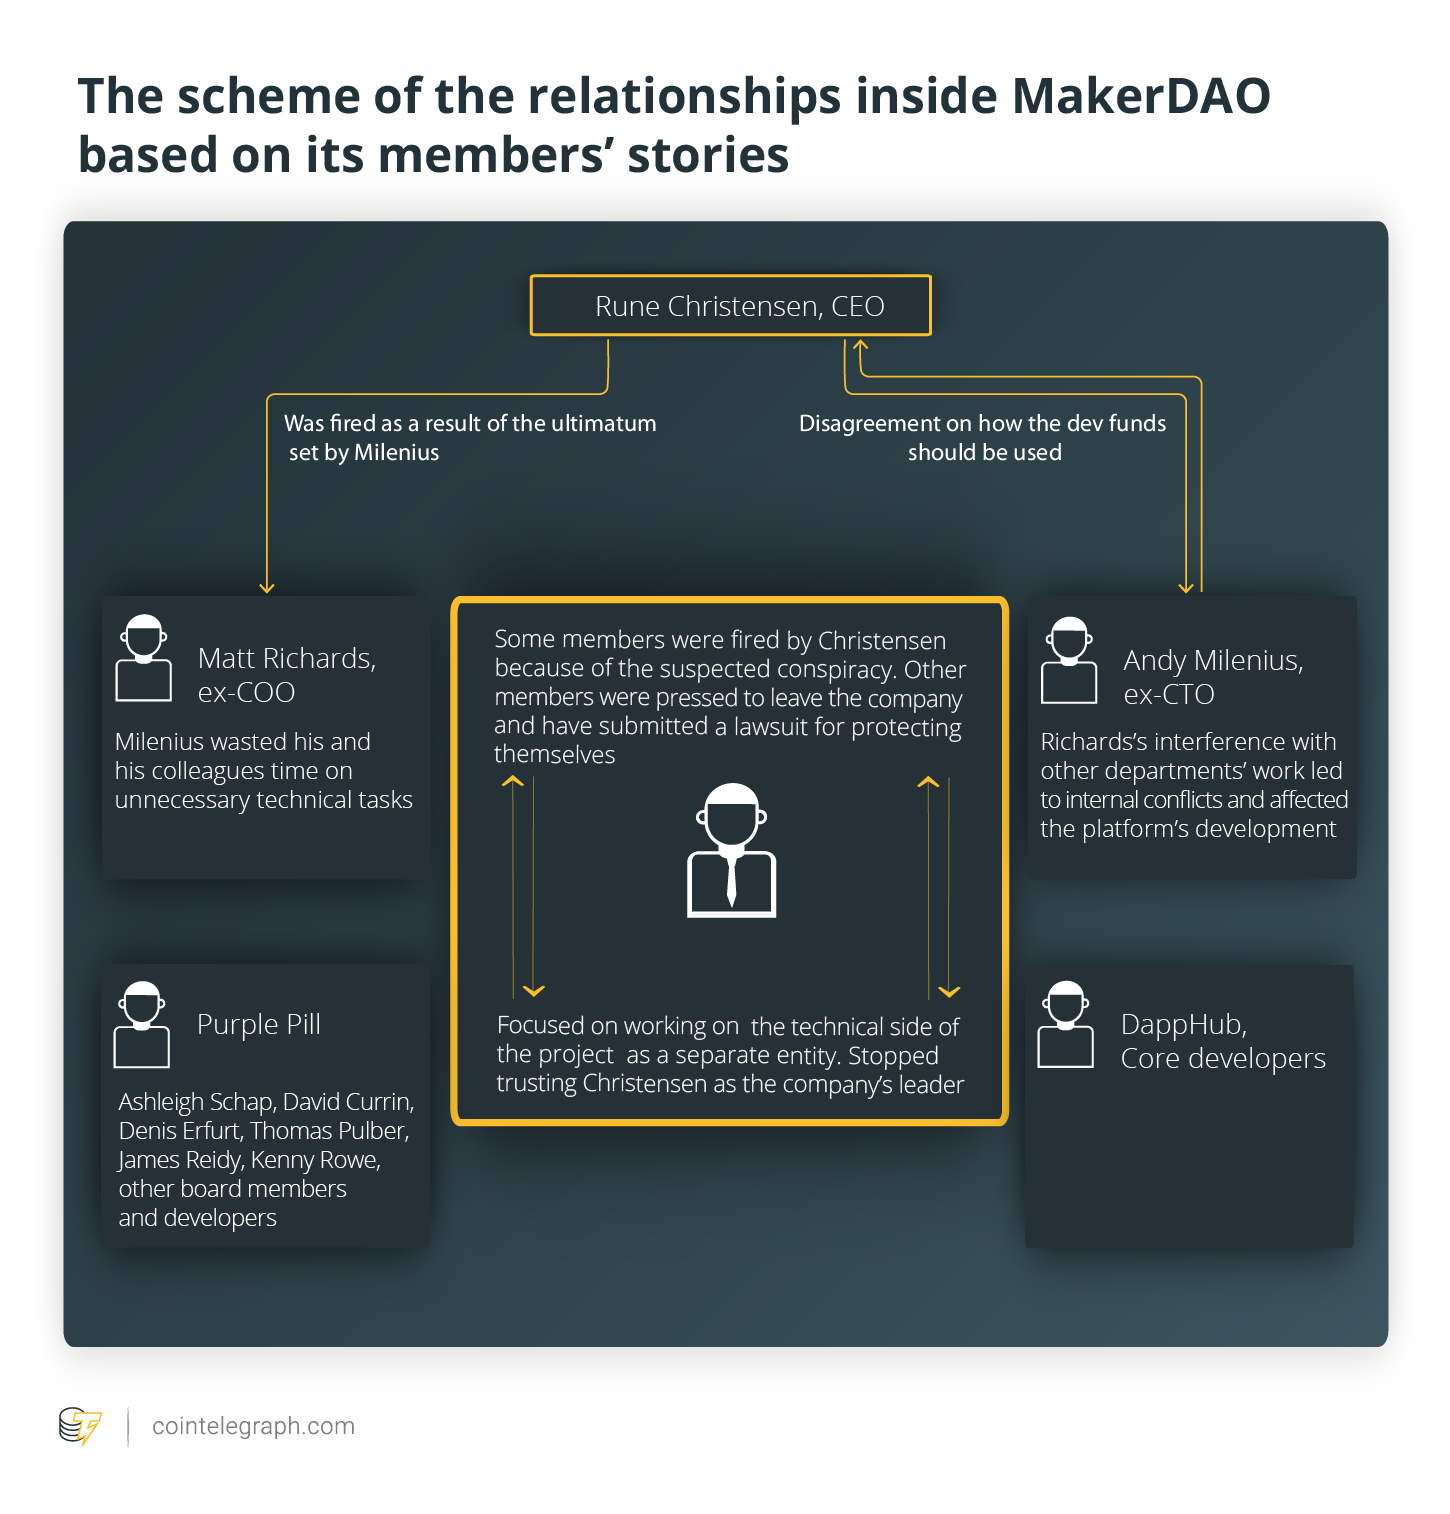 The scheme of the relationships inside MakerDAO based on its members' stories